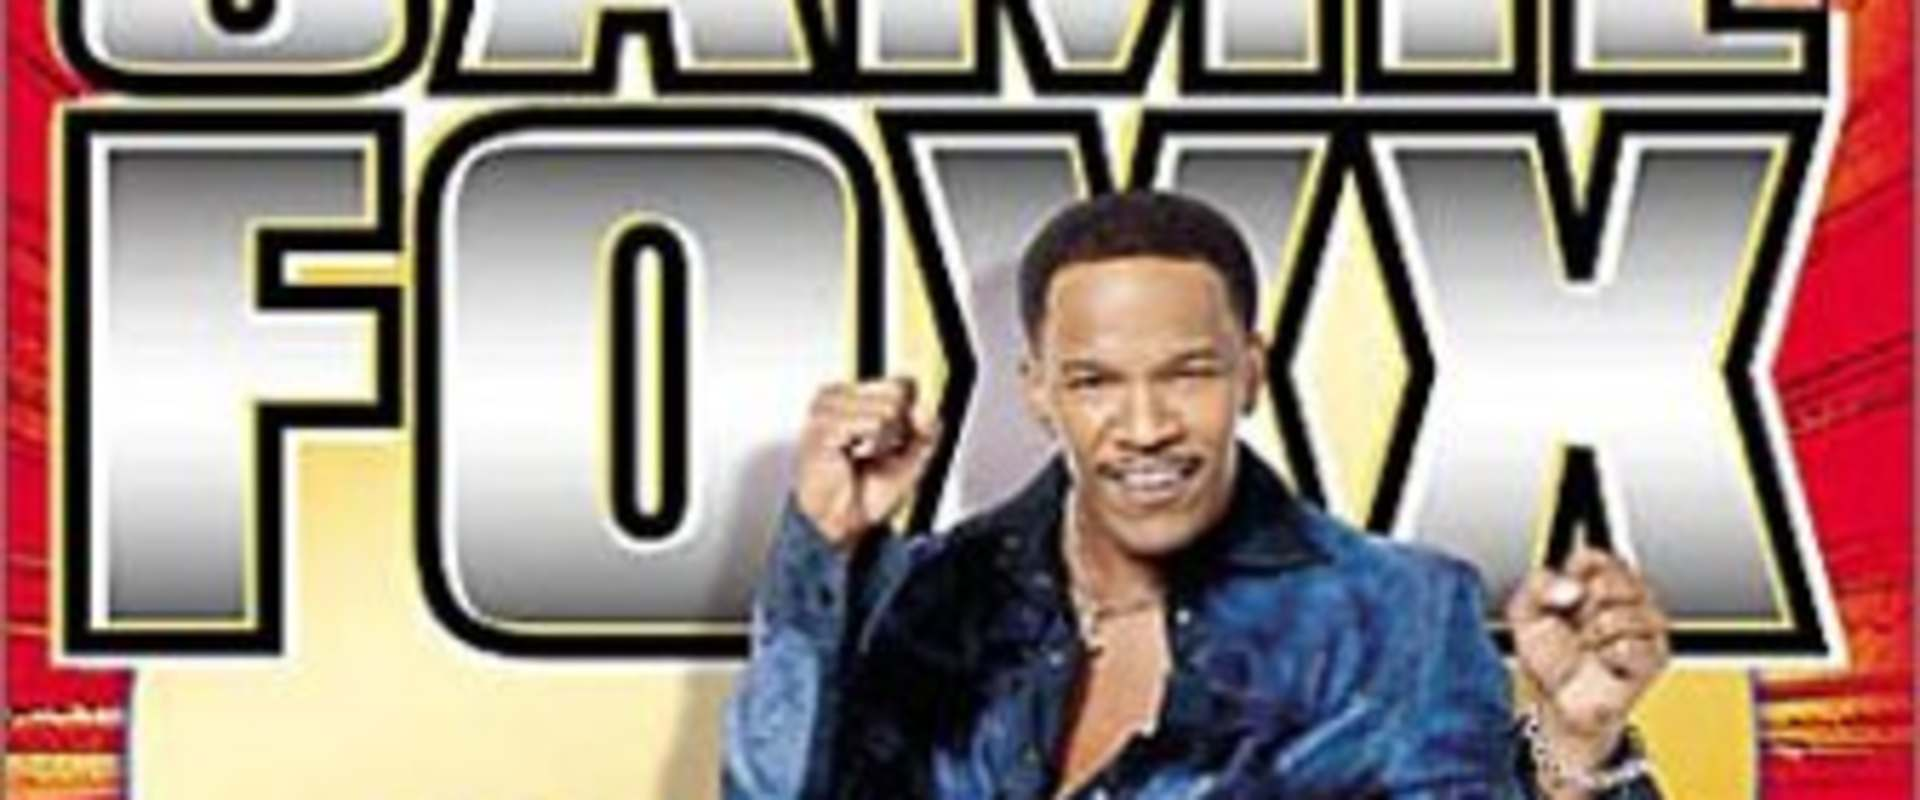 Jamie Foxx: I Might Need Security background 1